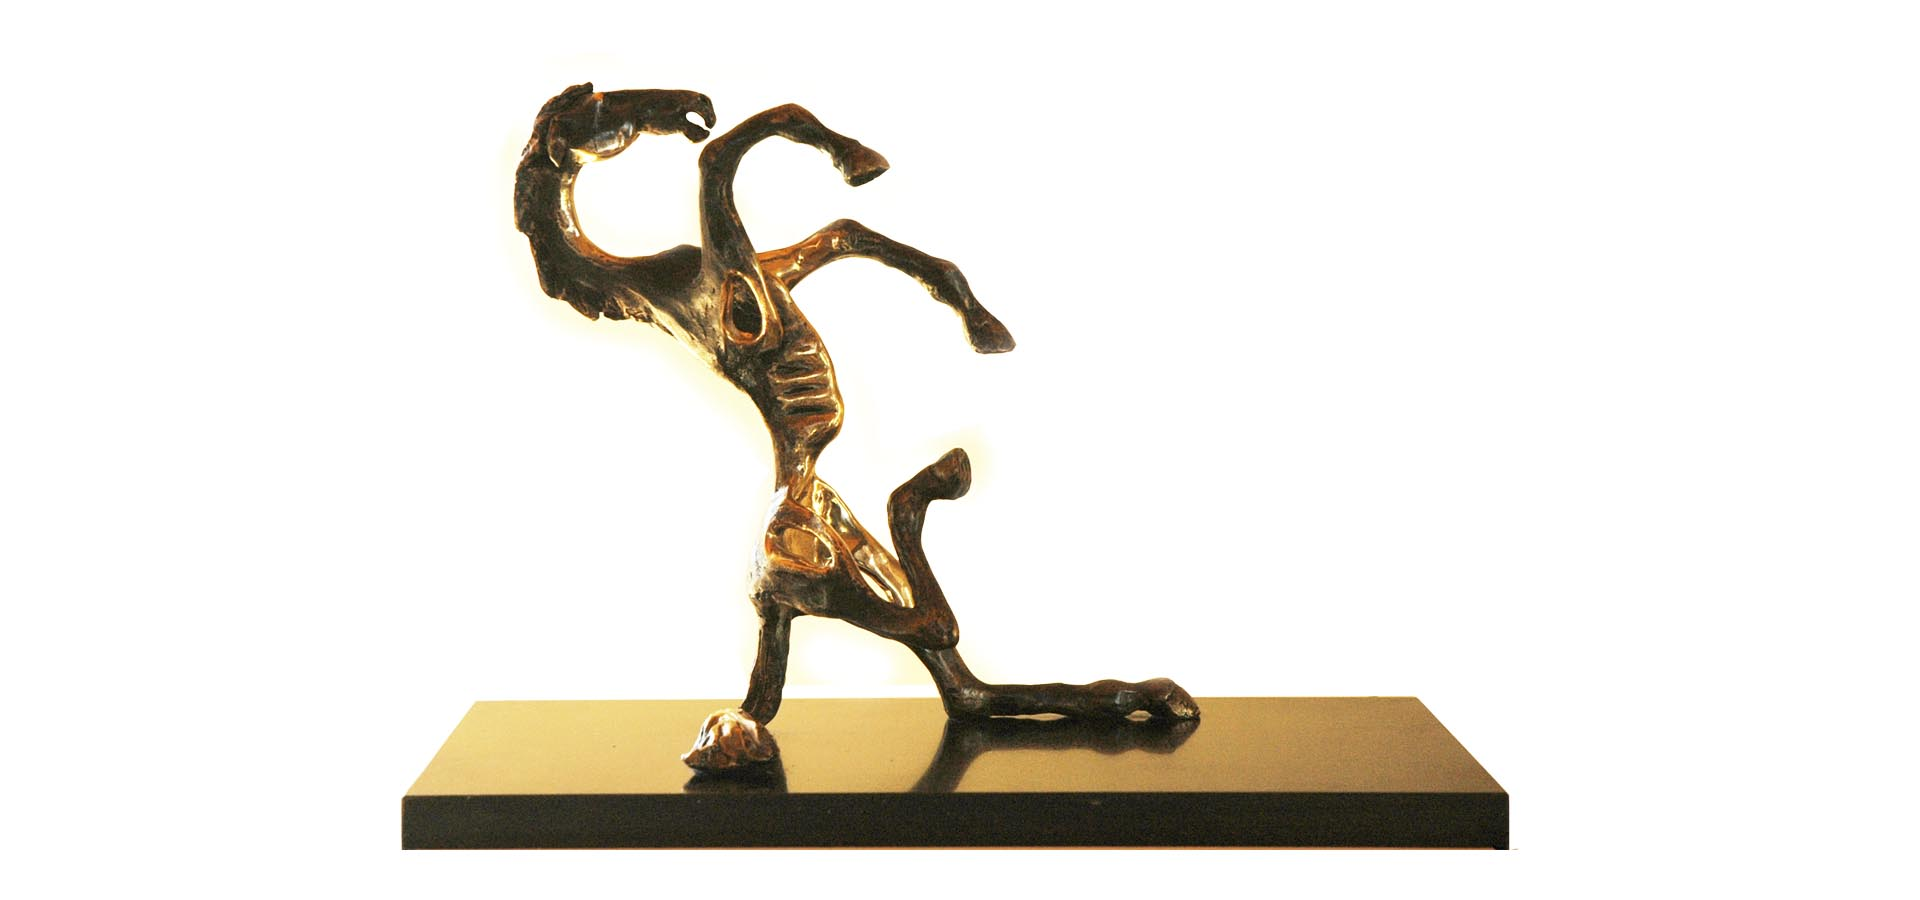 Image of bronze horse frollicking titled You Must Be Joking by Ani Mollereau